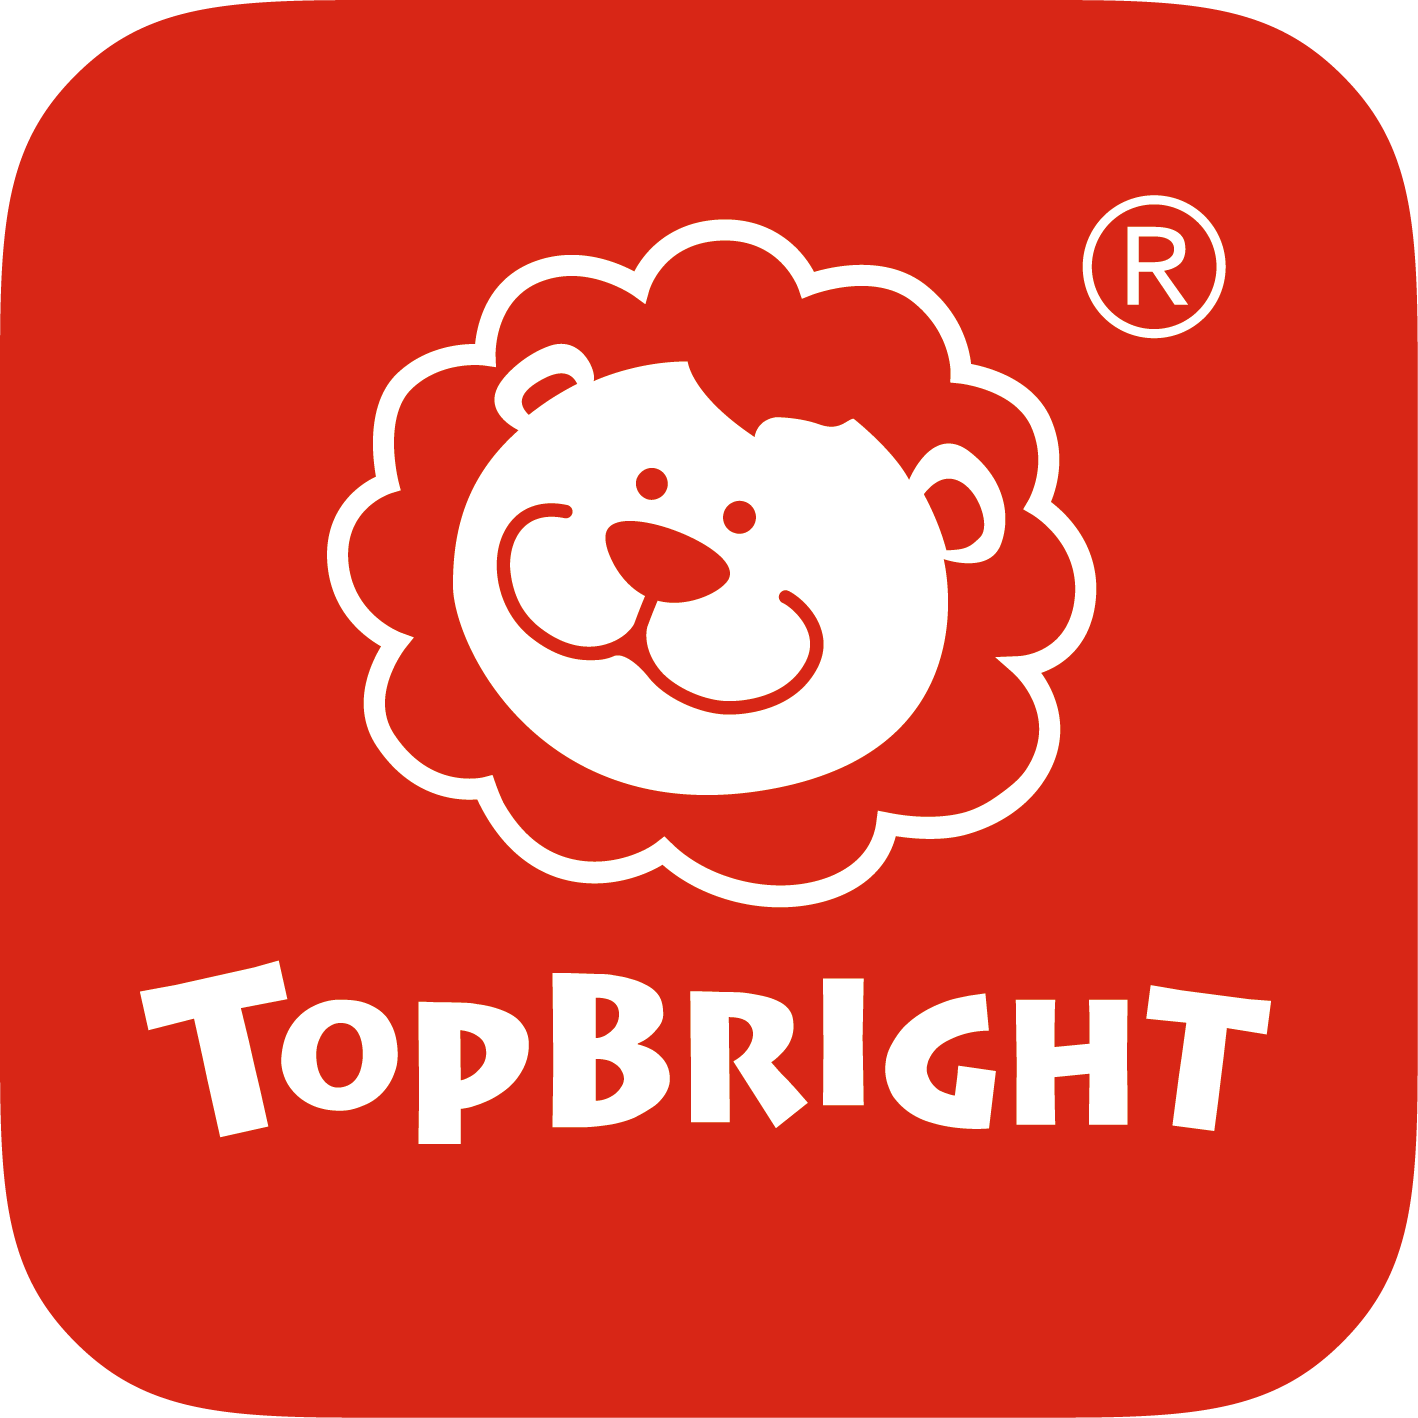 JIANGSU TOP BRIGHT WISDOM INFORMATION TECHNOLOGY CO., LTD